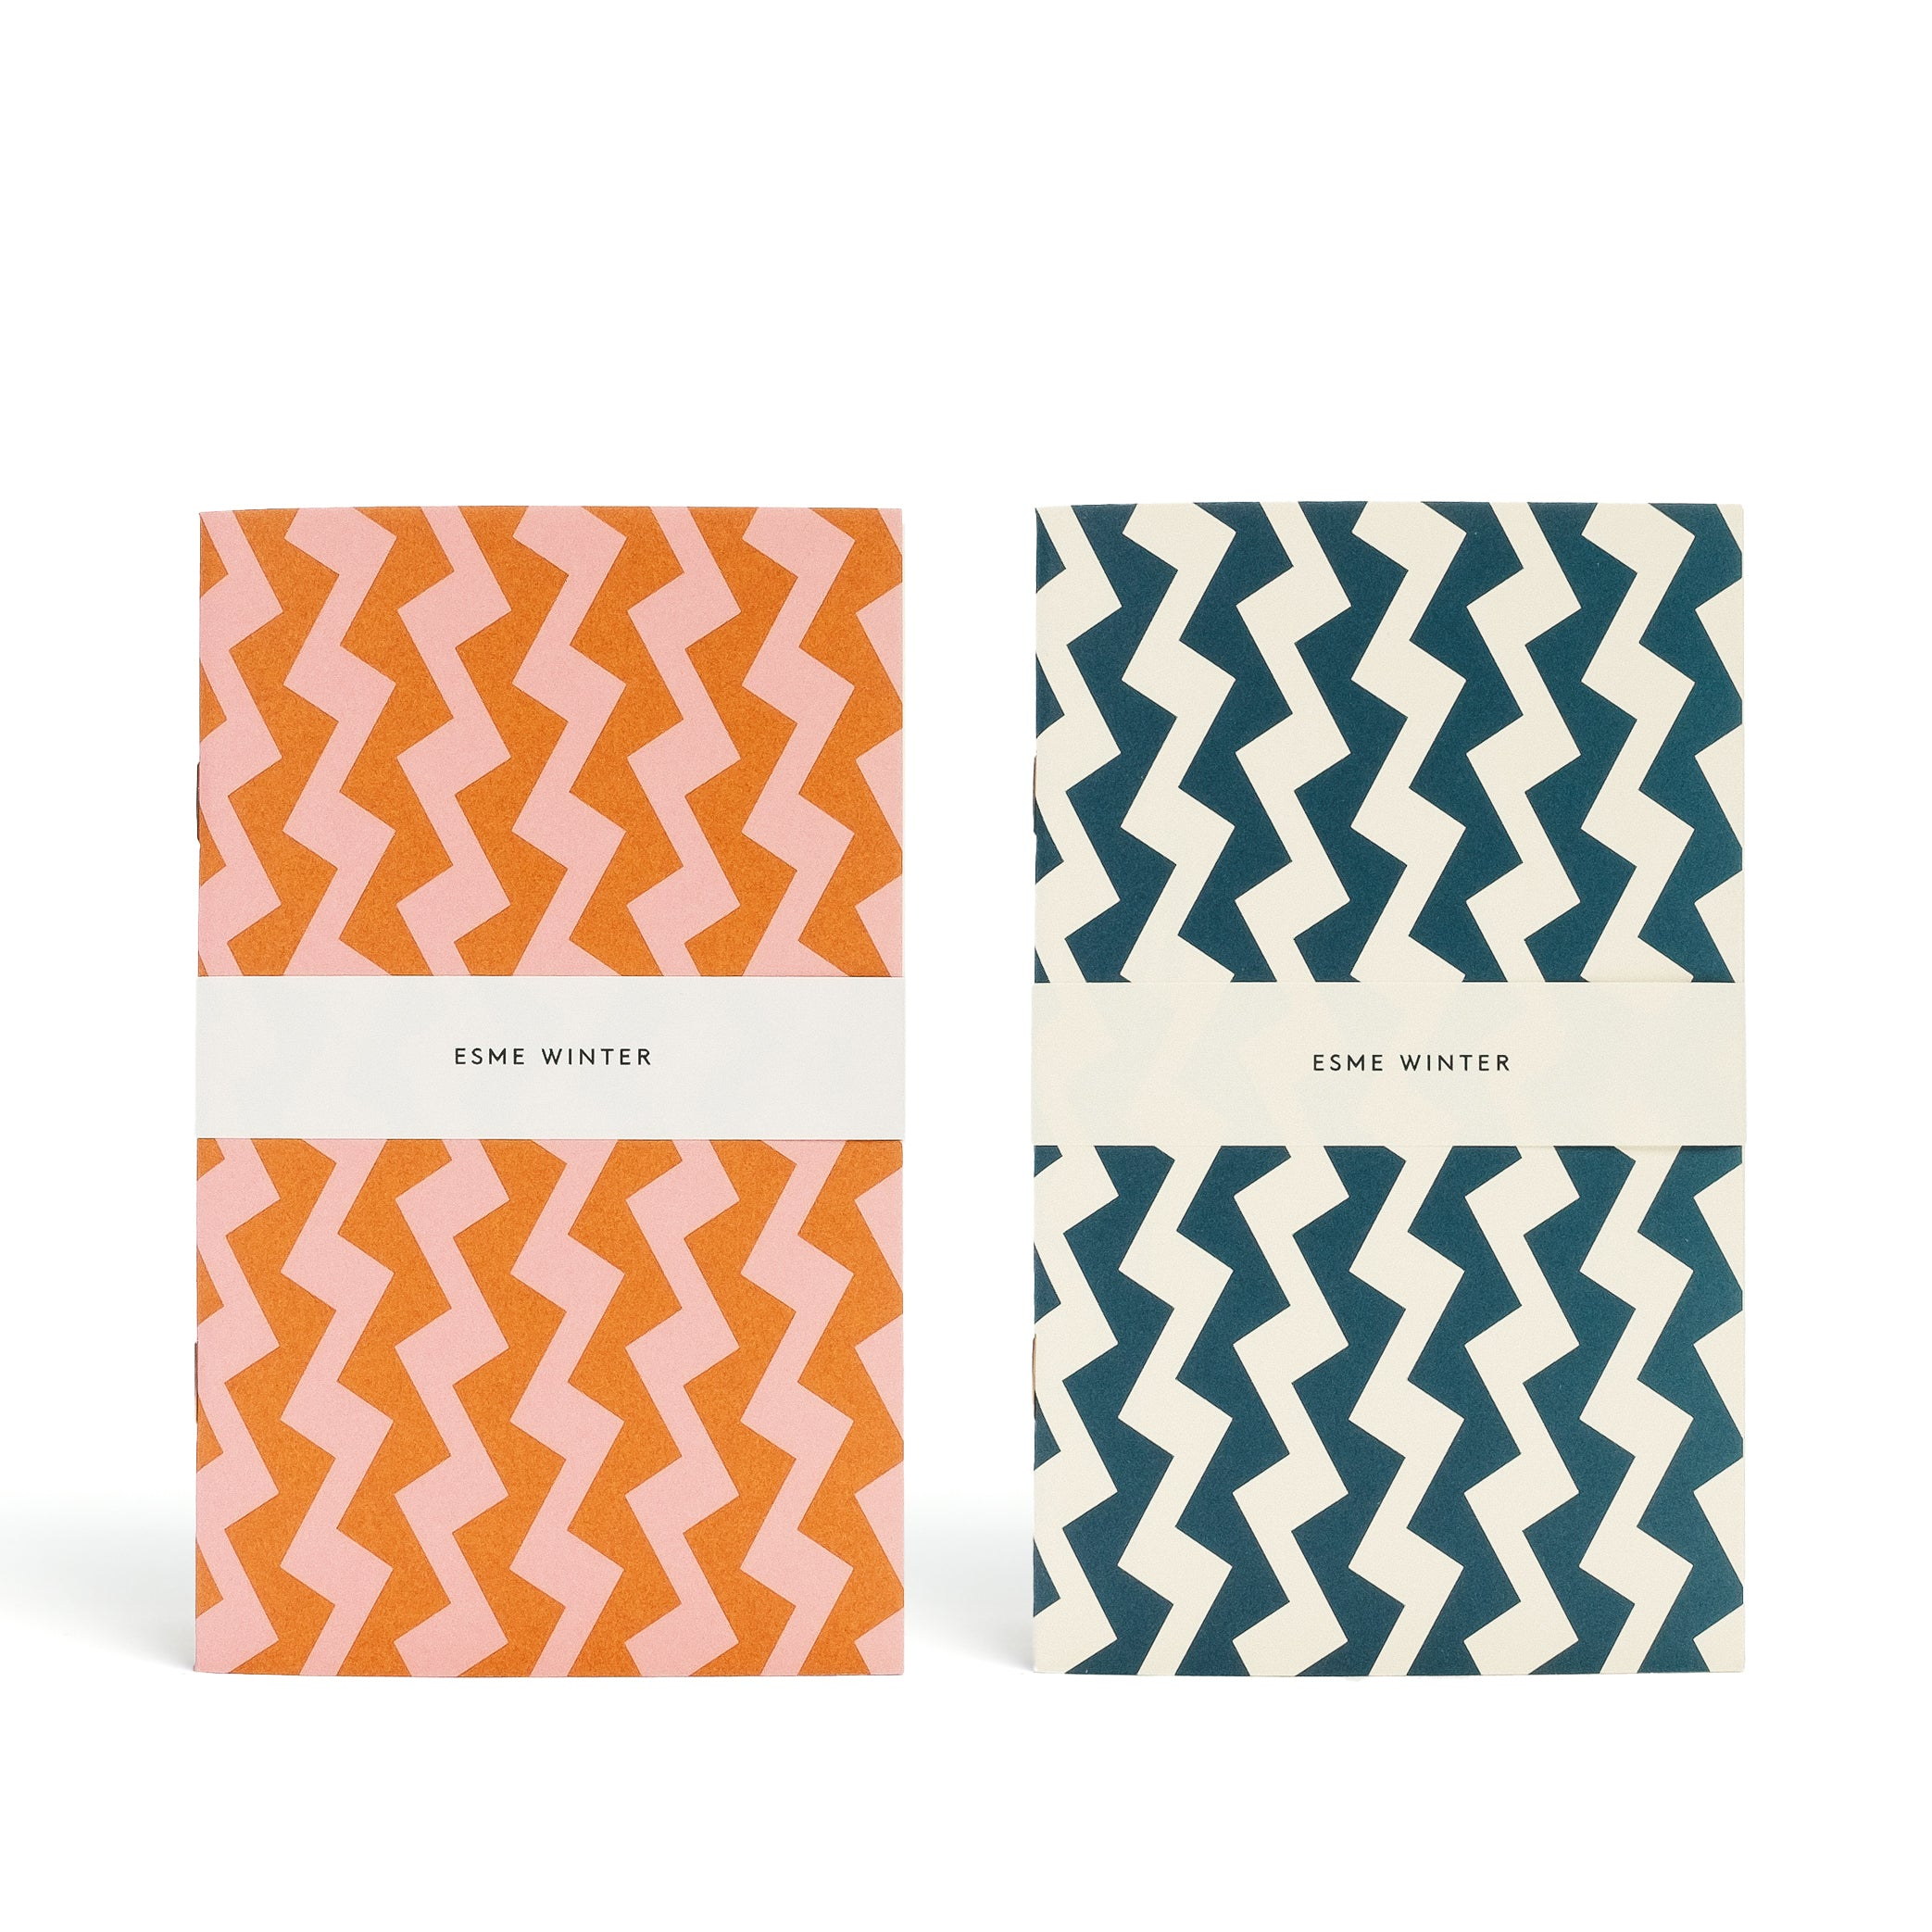 DANCERS<br> Pack of 2 Patterned Notebooks - Esme Winter